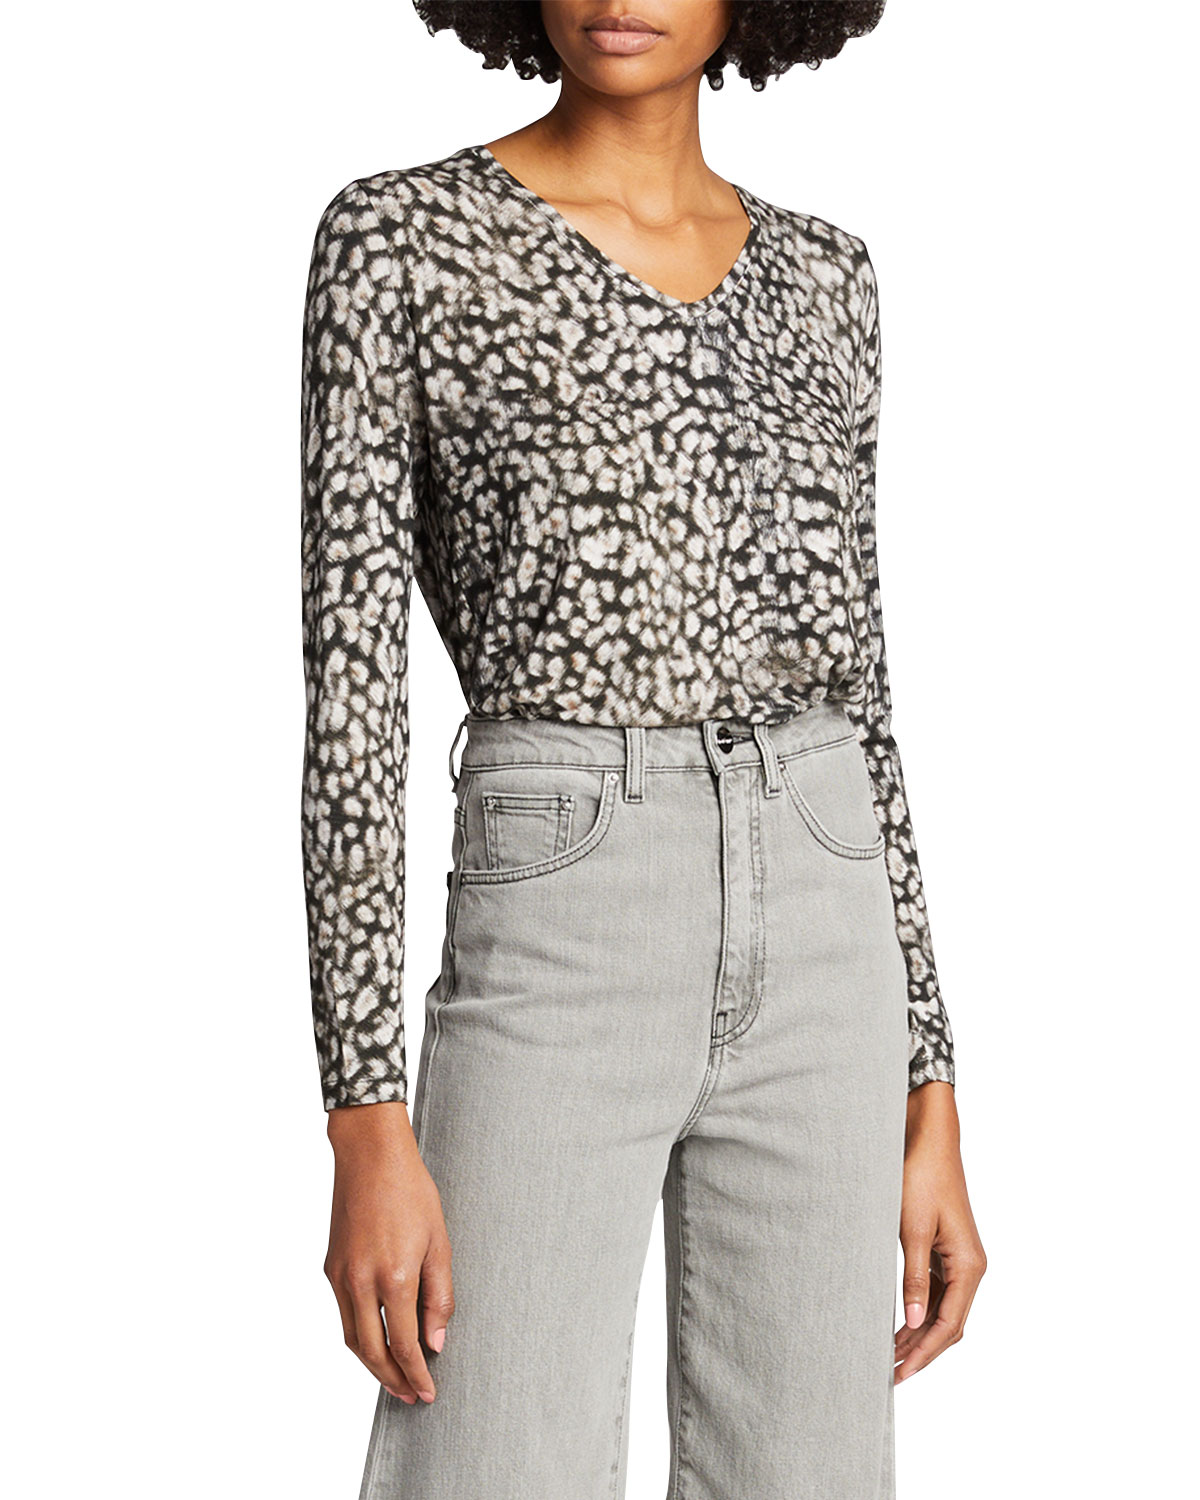 Majestic SOFT TOUCH LEOPARD PRINT LONG-SLEEVE V-NECK TOP